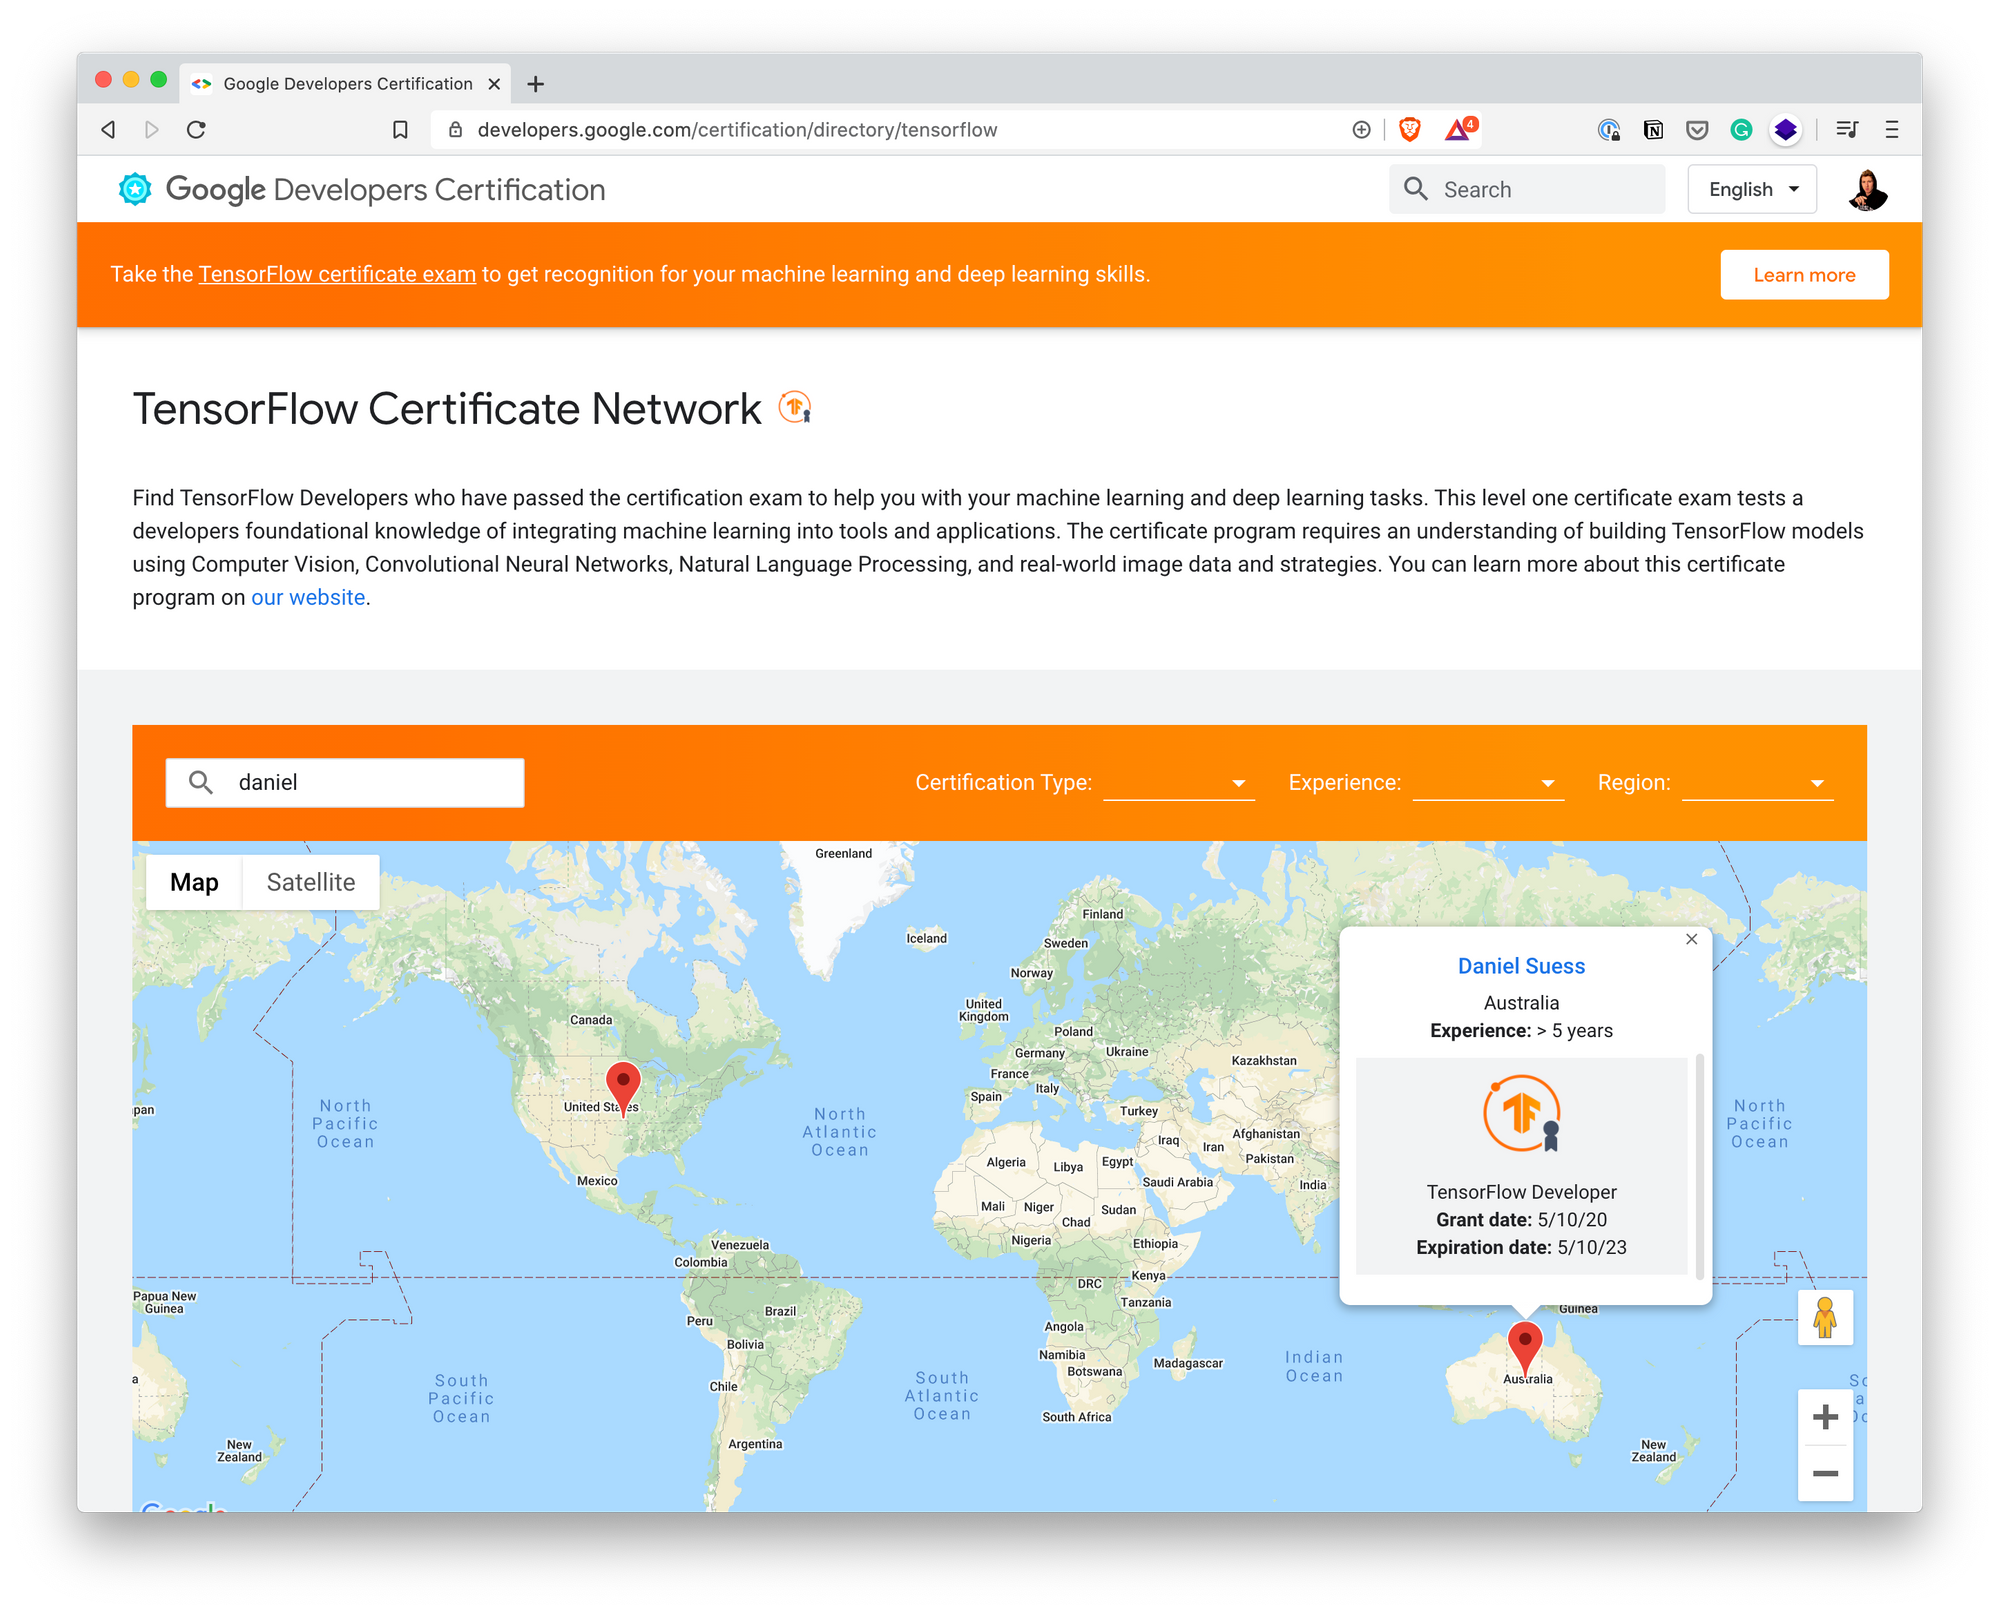 screenshot of tensorflow developers network with certifications of those in australia highlighted